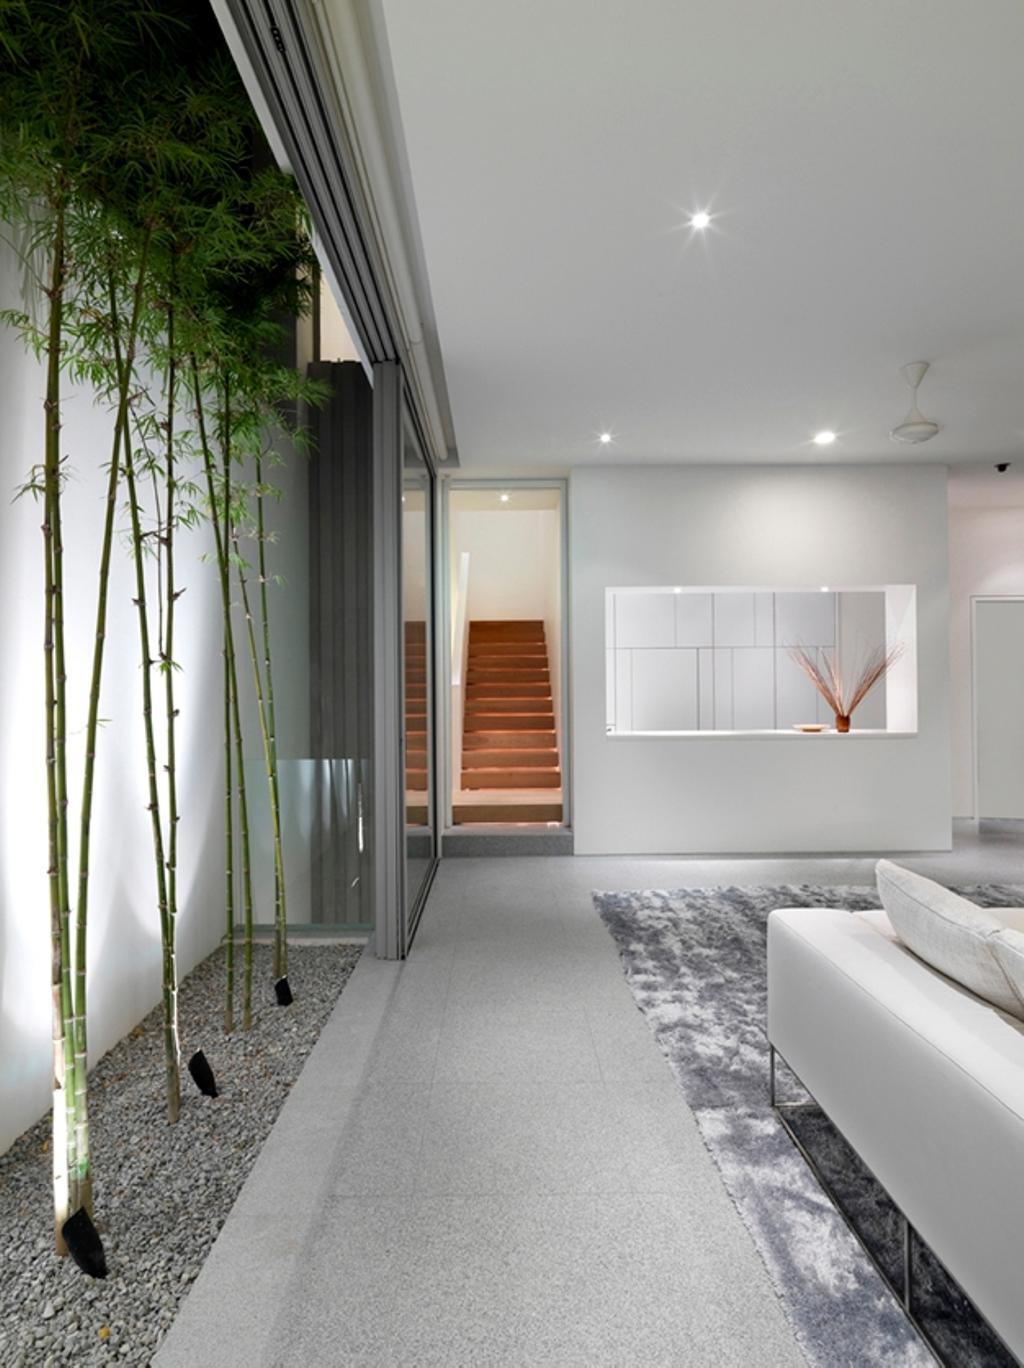 Modern, Landed, Ontario, Architect, Ministry of Design, Recessed Lighting, Recessed Lights, White Ceiling, White Walls, Planted Trees, Pebbles Path, Rug, Grey Rug, Gray Rug, White Sofa, Bamboo, Flora, Plant, Corridor